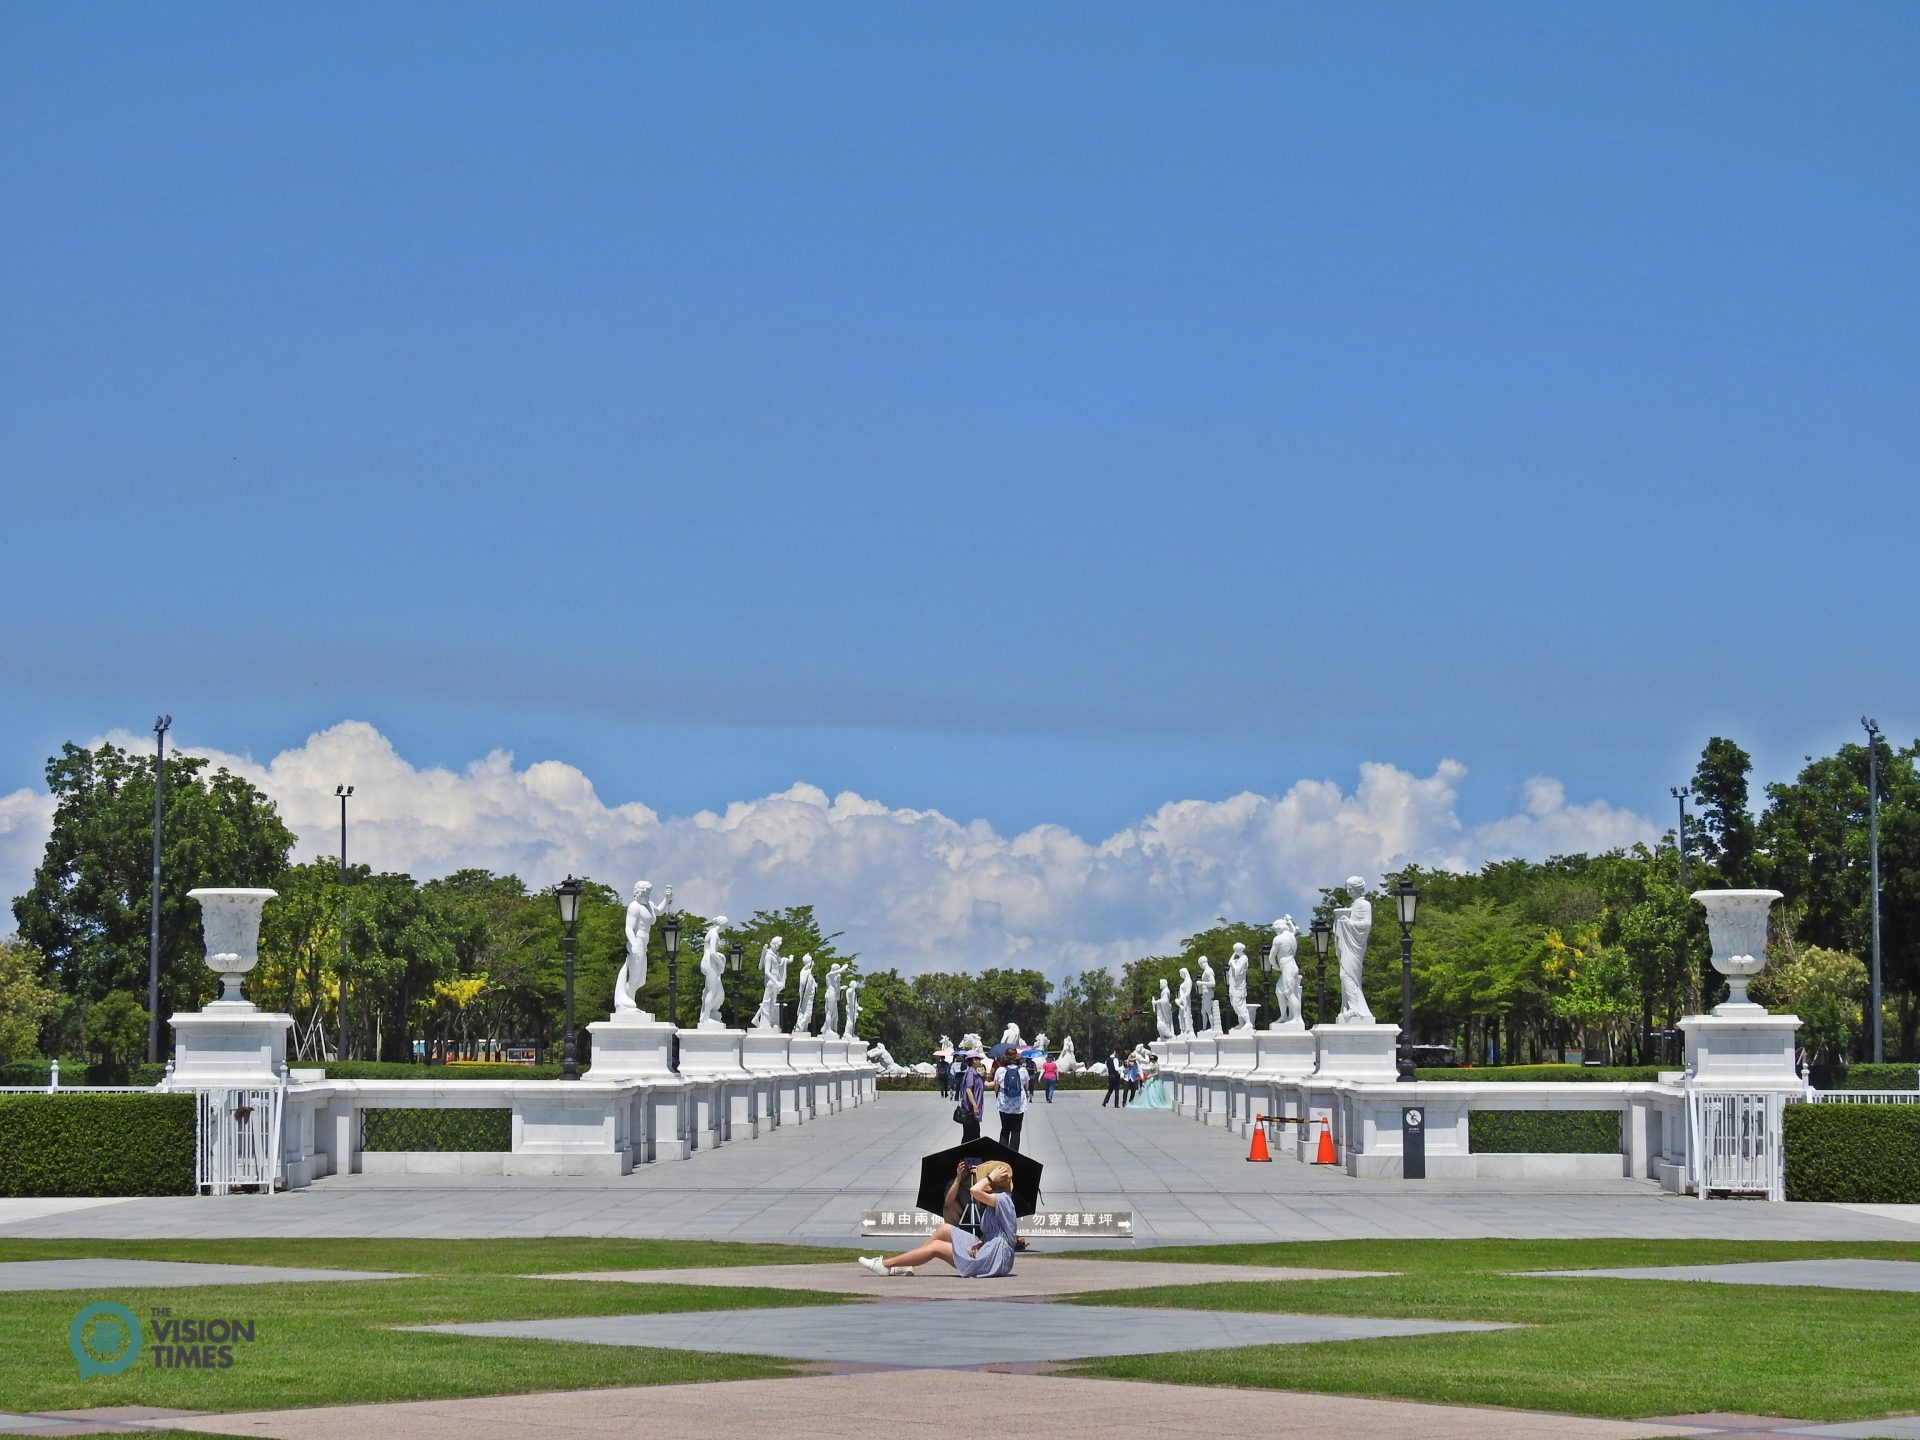 The Olympus Bridge is situated between the museum and the Fountain of Apollo. (Image: Billy Shyu / Vision Times)